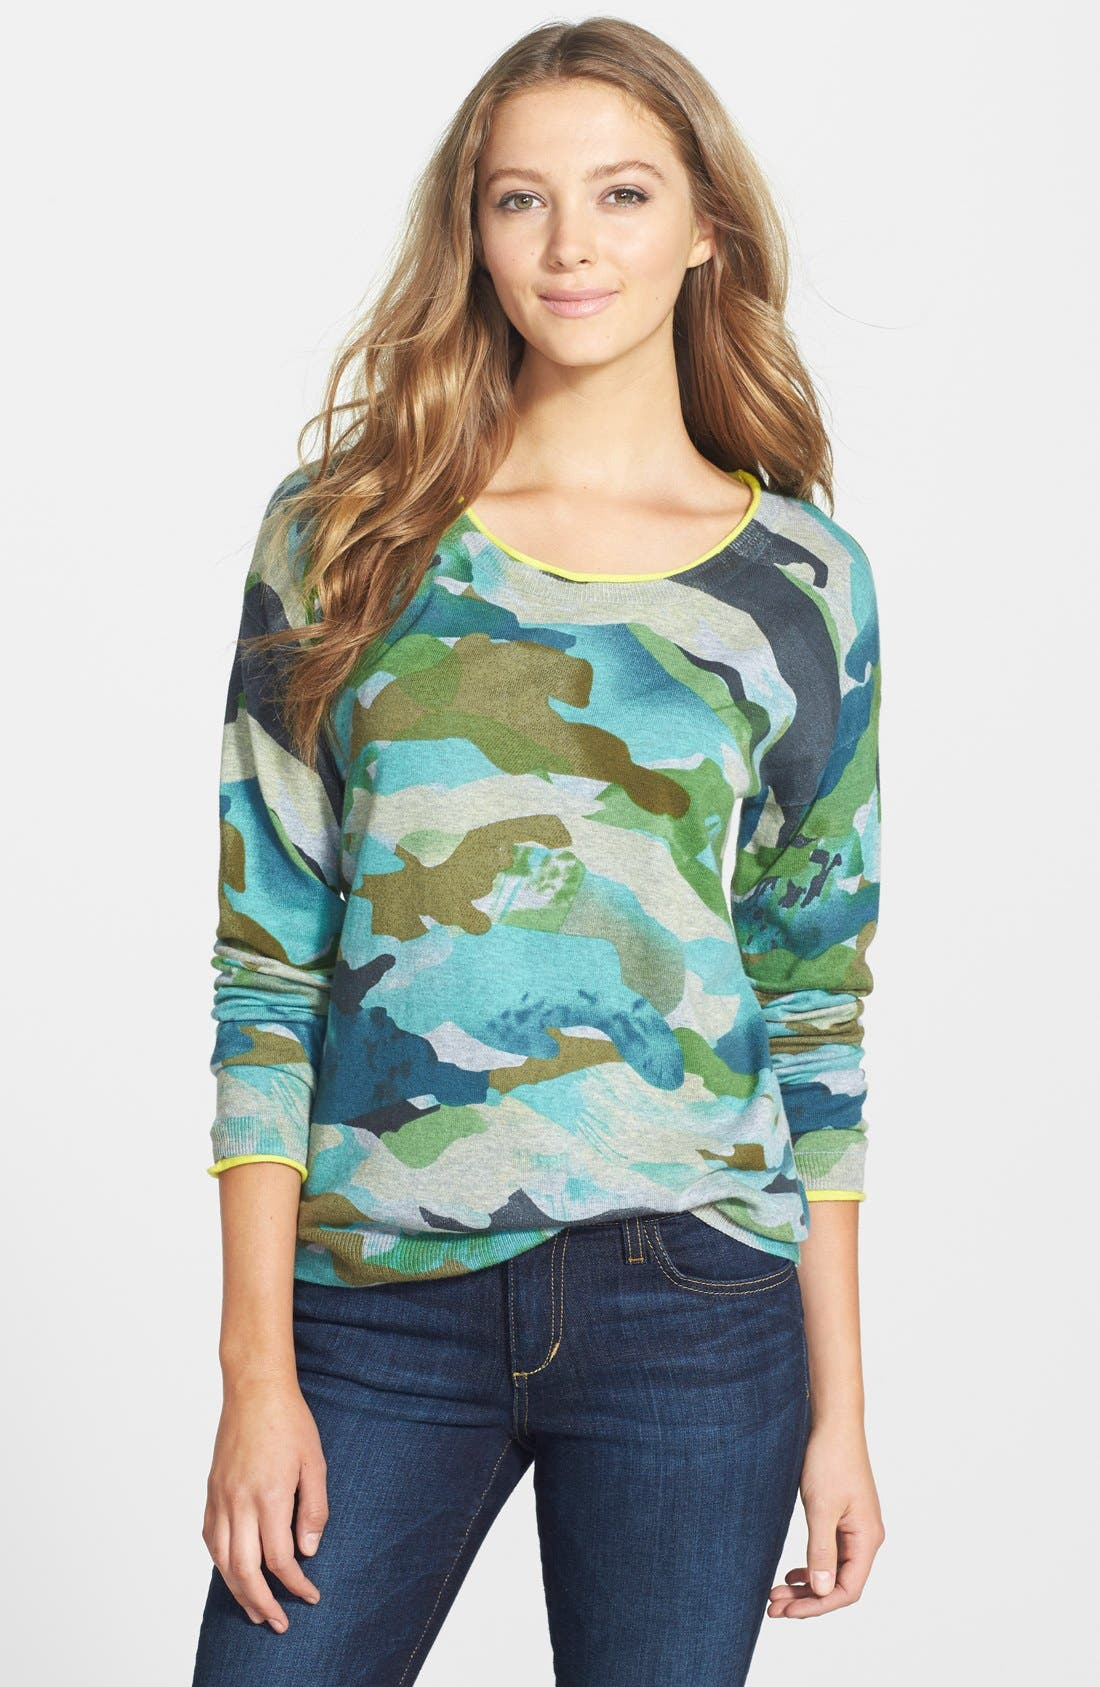 Alternate Image 1 Selected - Two by Vince Camuto Contrast Trim Camo Print Sweater (Regular & Petite)